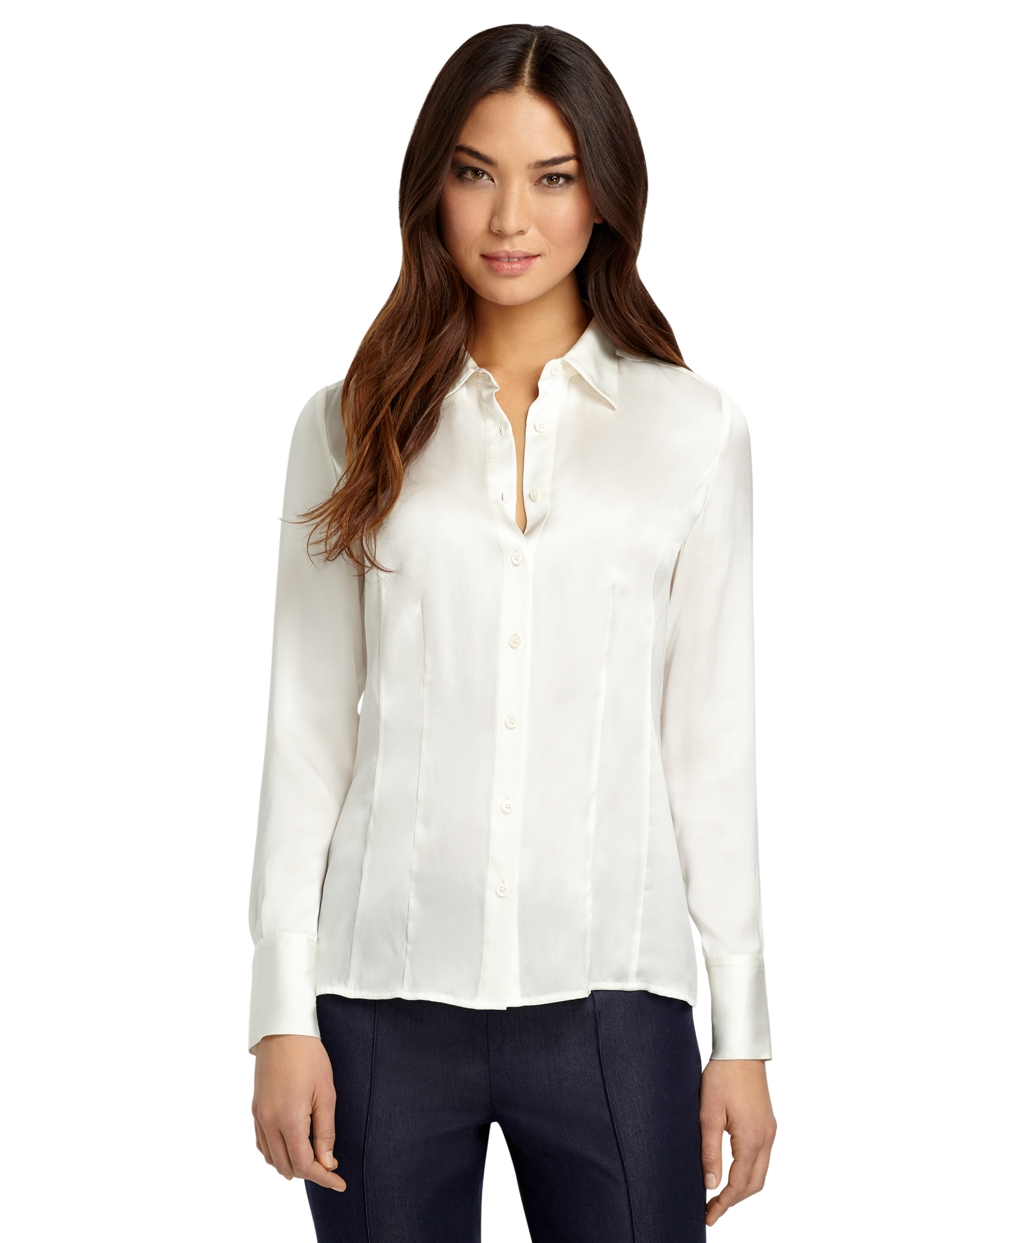 Brooks Brothers White Blouse 59